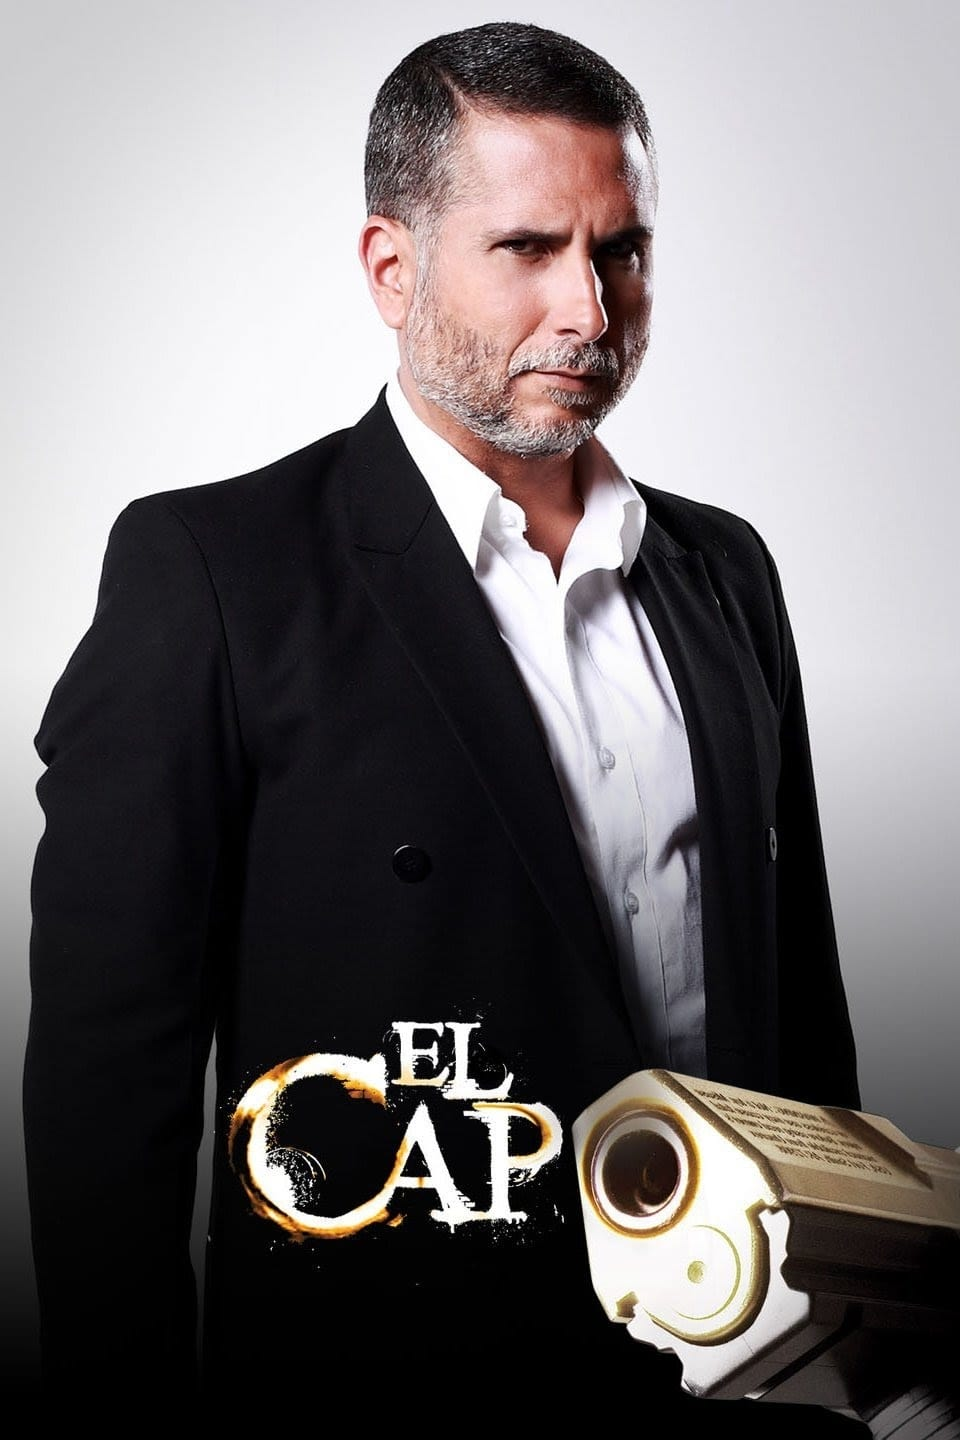 El Capo series tv complet